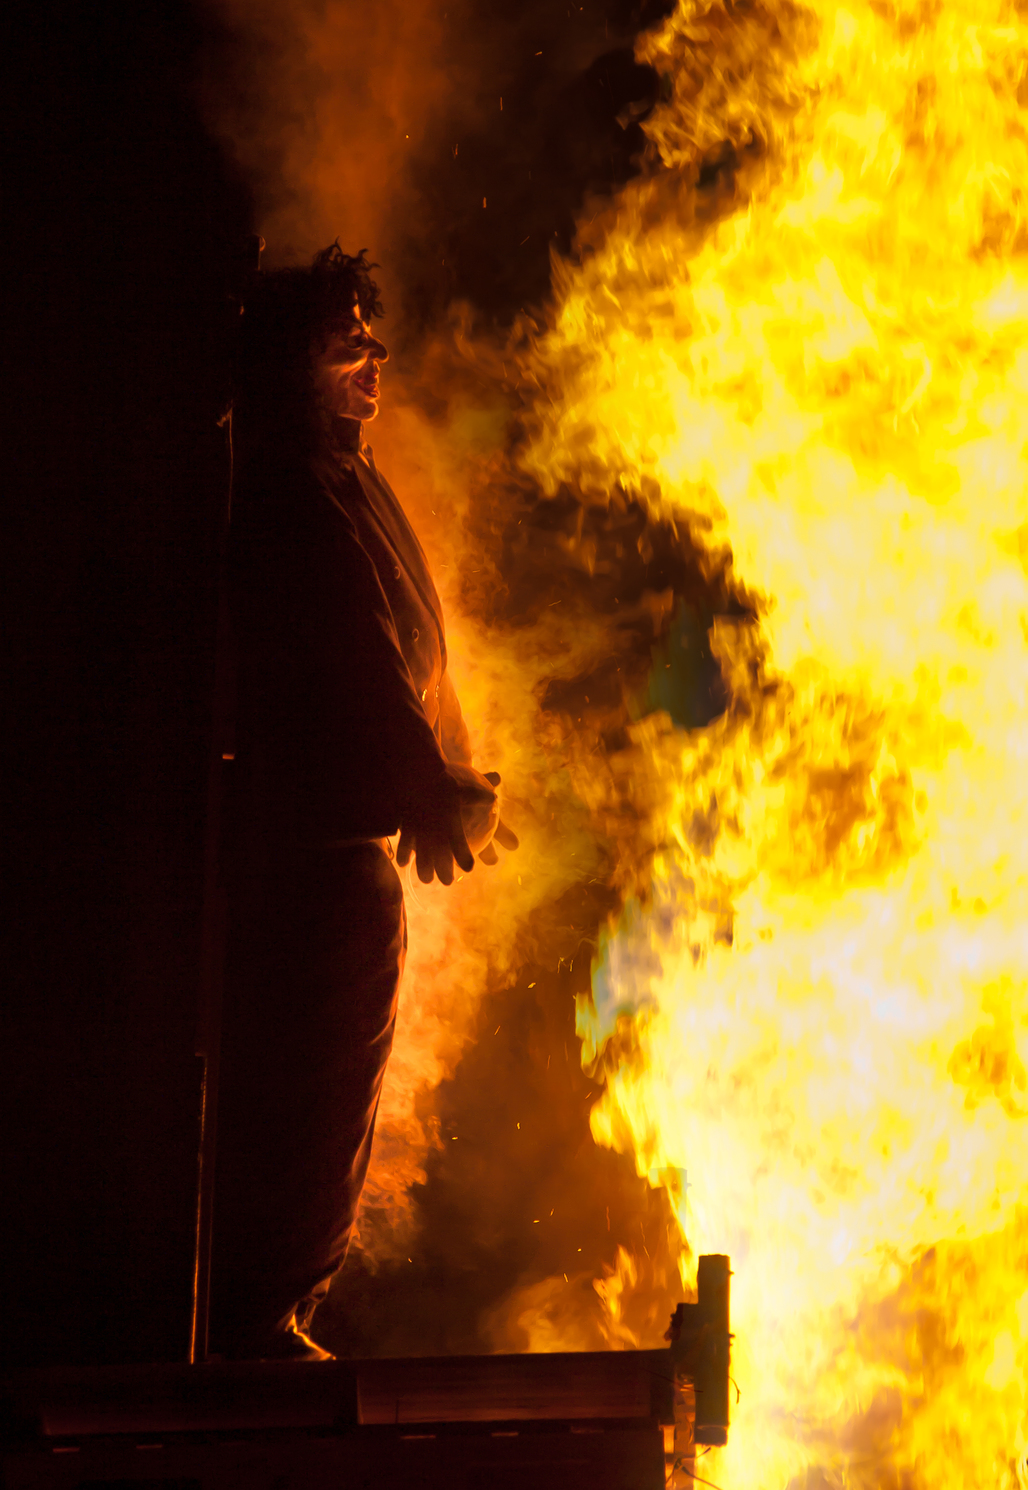 Guy Fawkes effigy (photo by William Warby via Flickr)